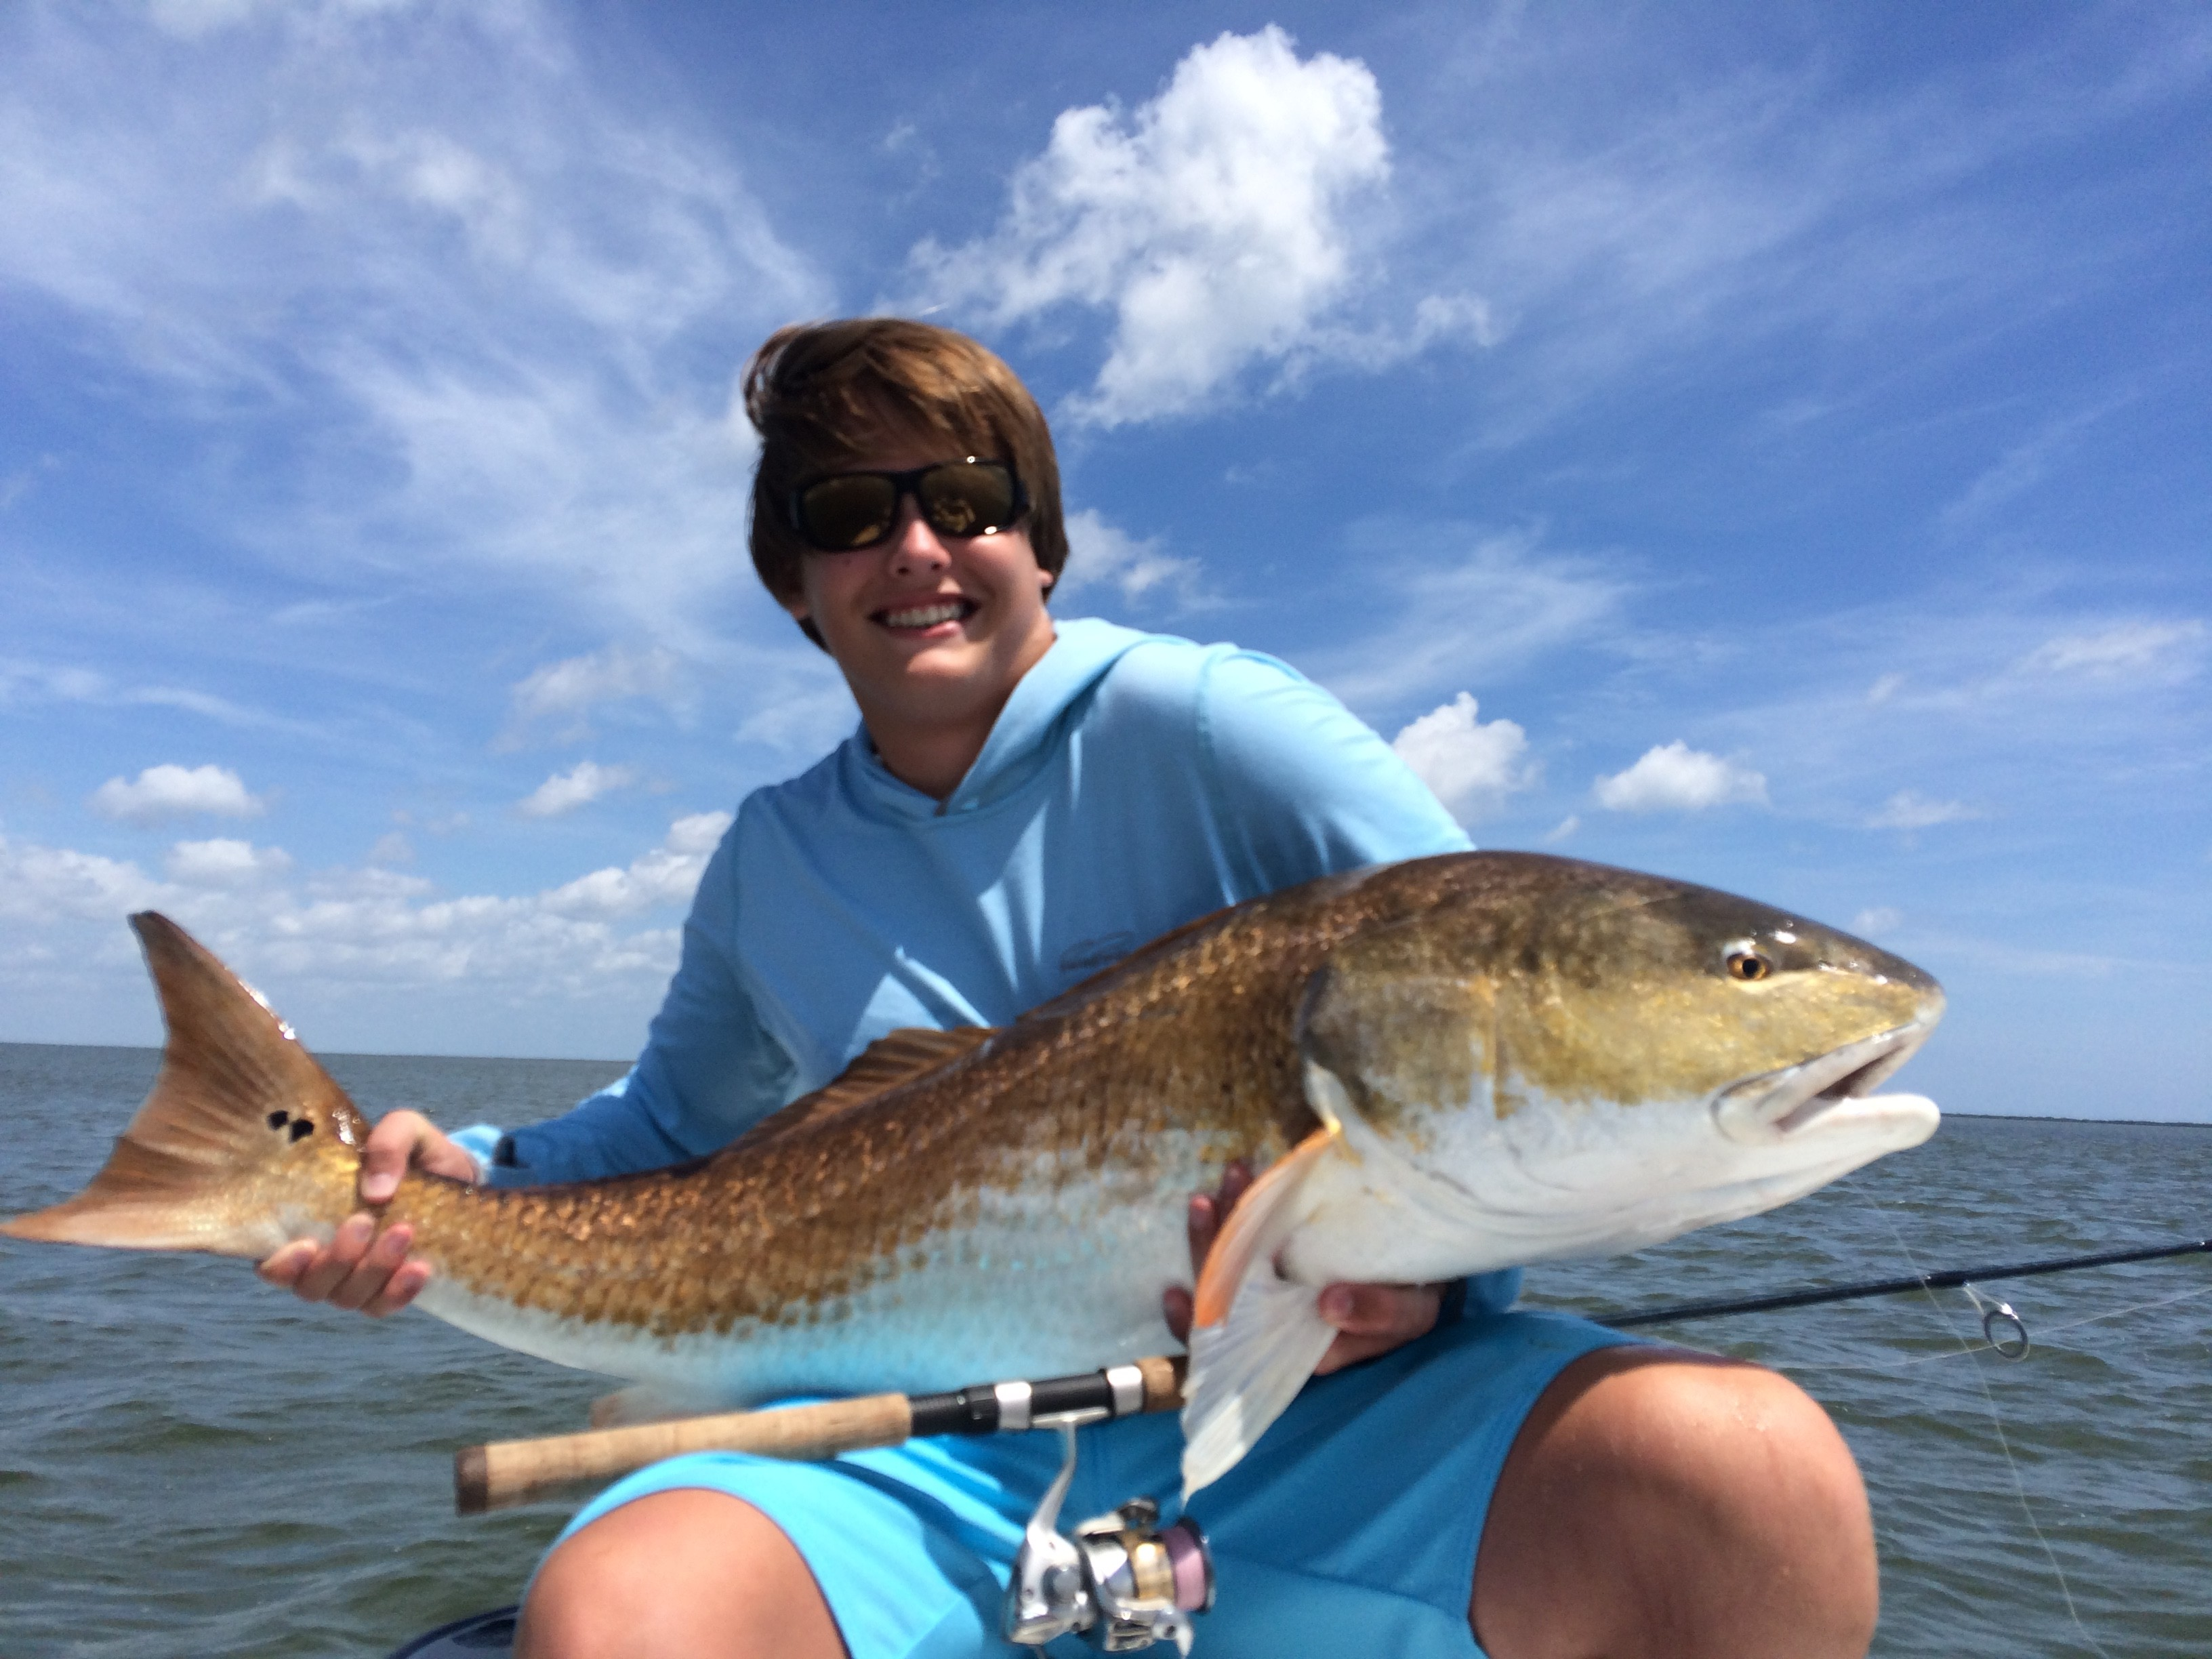 New smyrna beach summer fishing report for New smyrna beach fishing spots